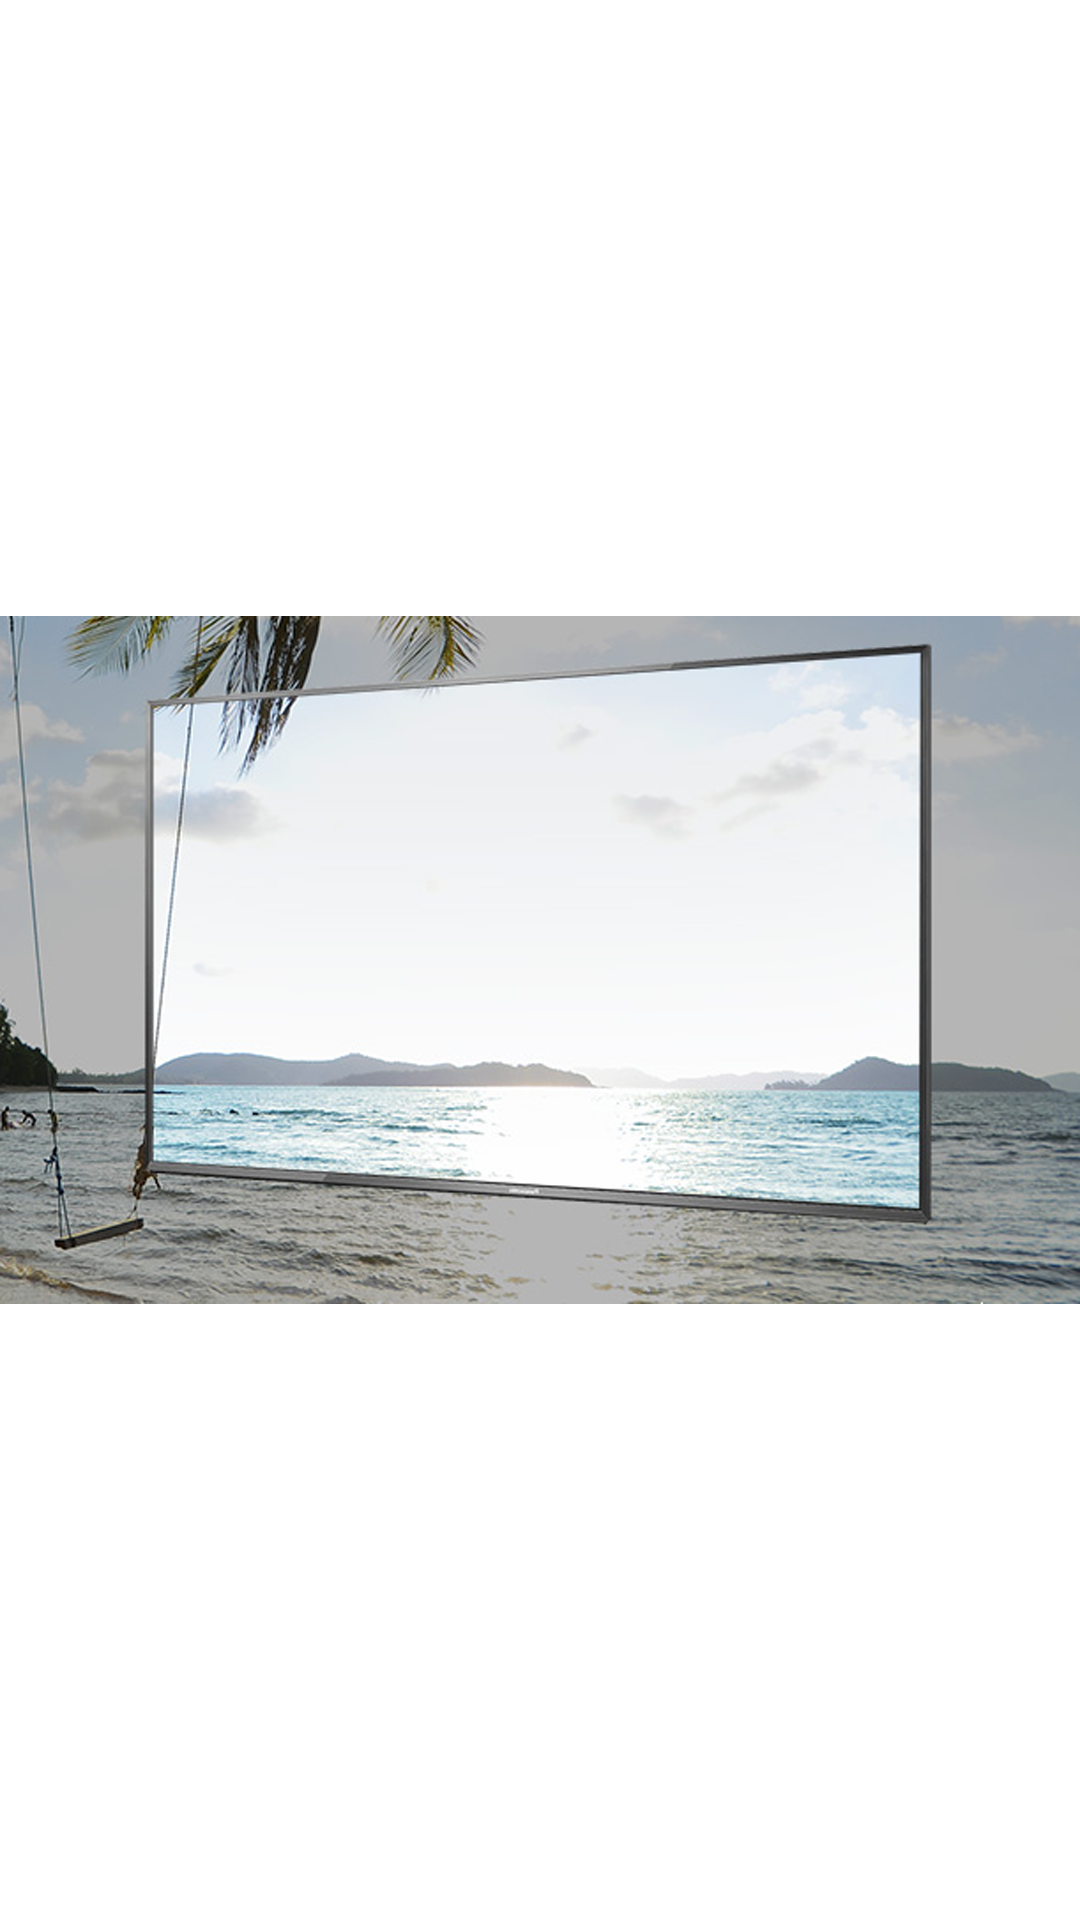 Panasonic TH-40CX600D 101.6 cm (40) LED TV 4K (Ultra HD)